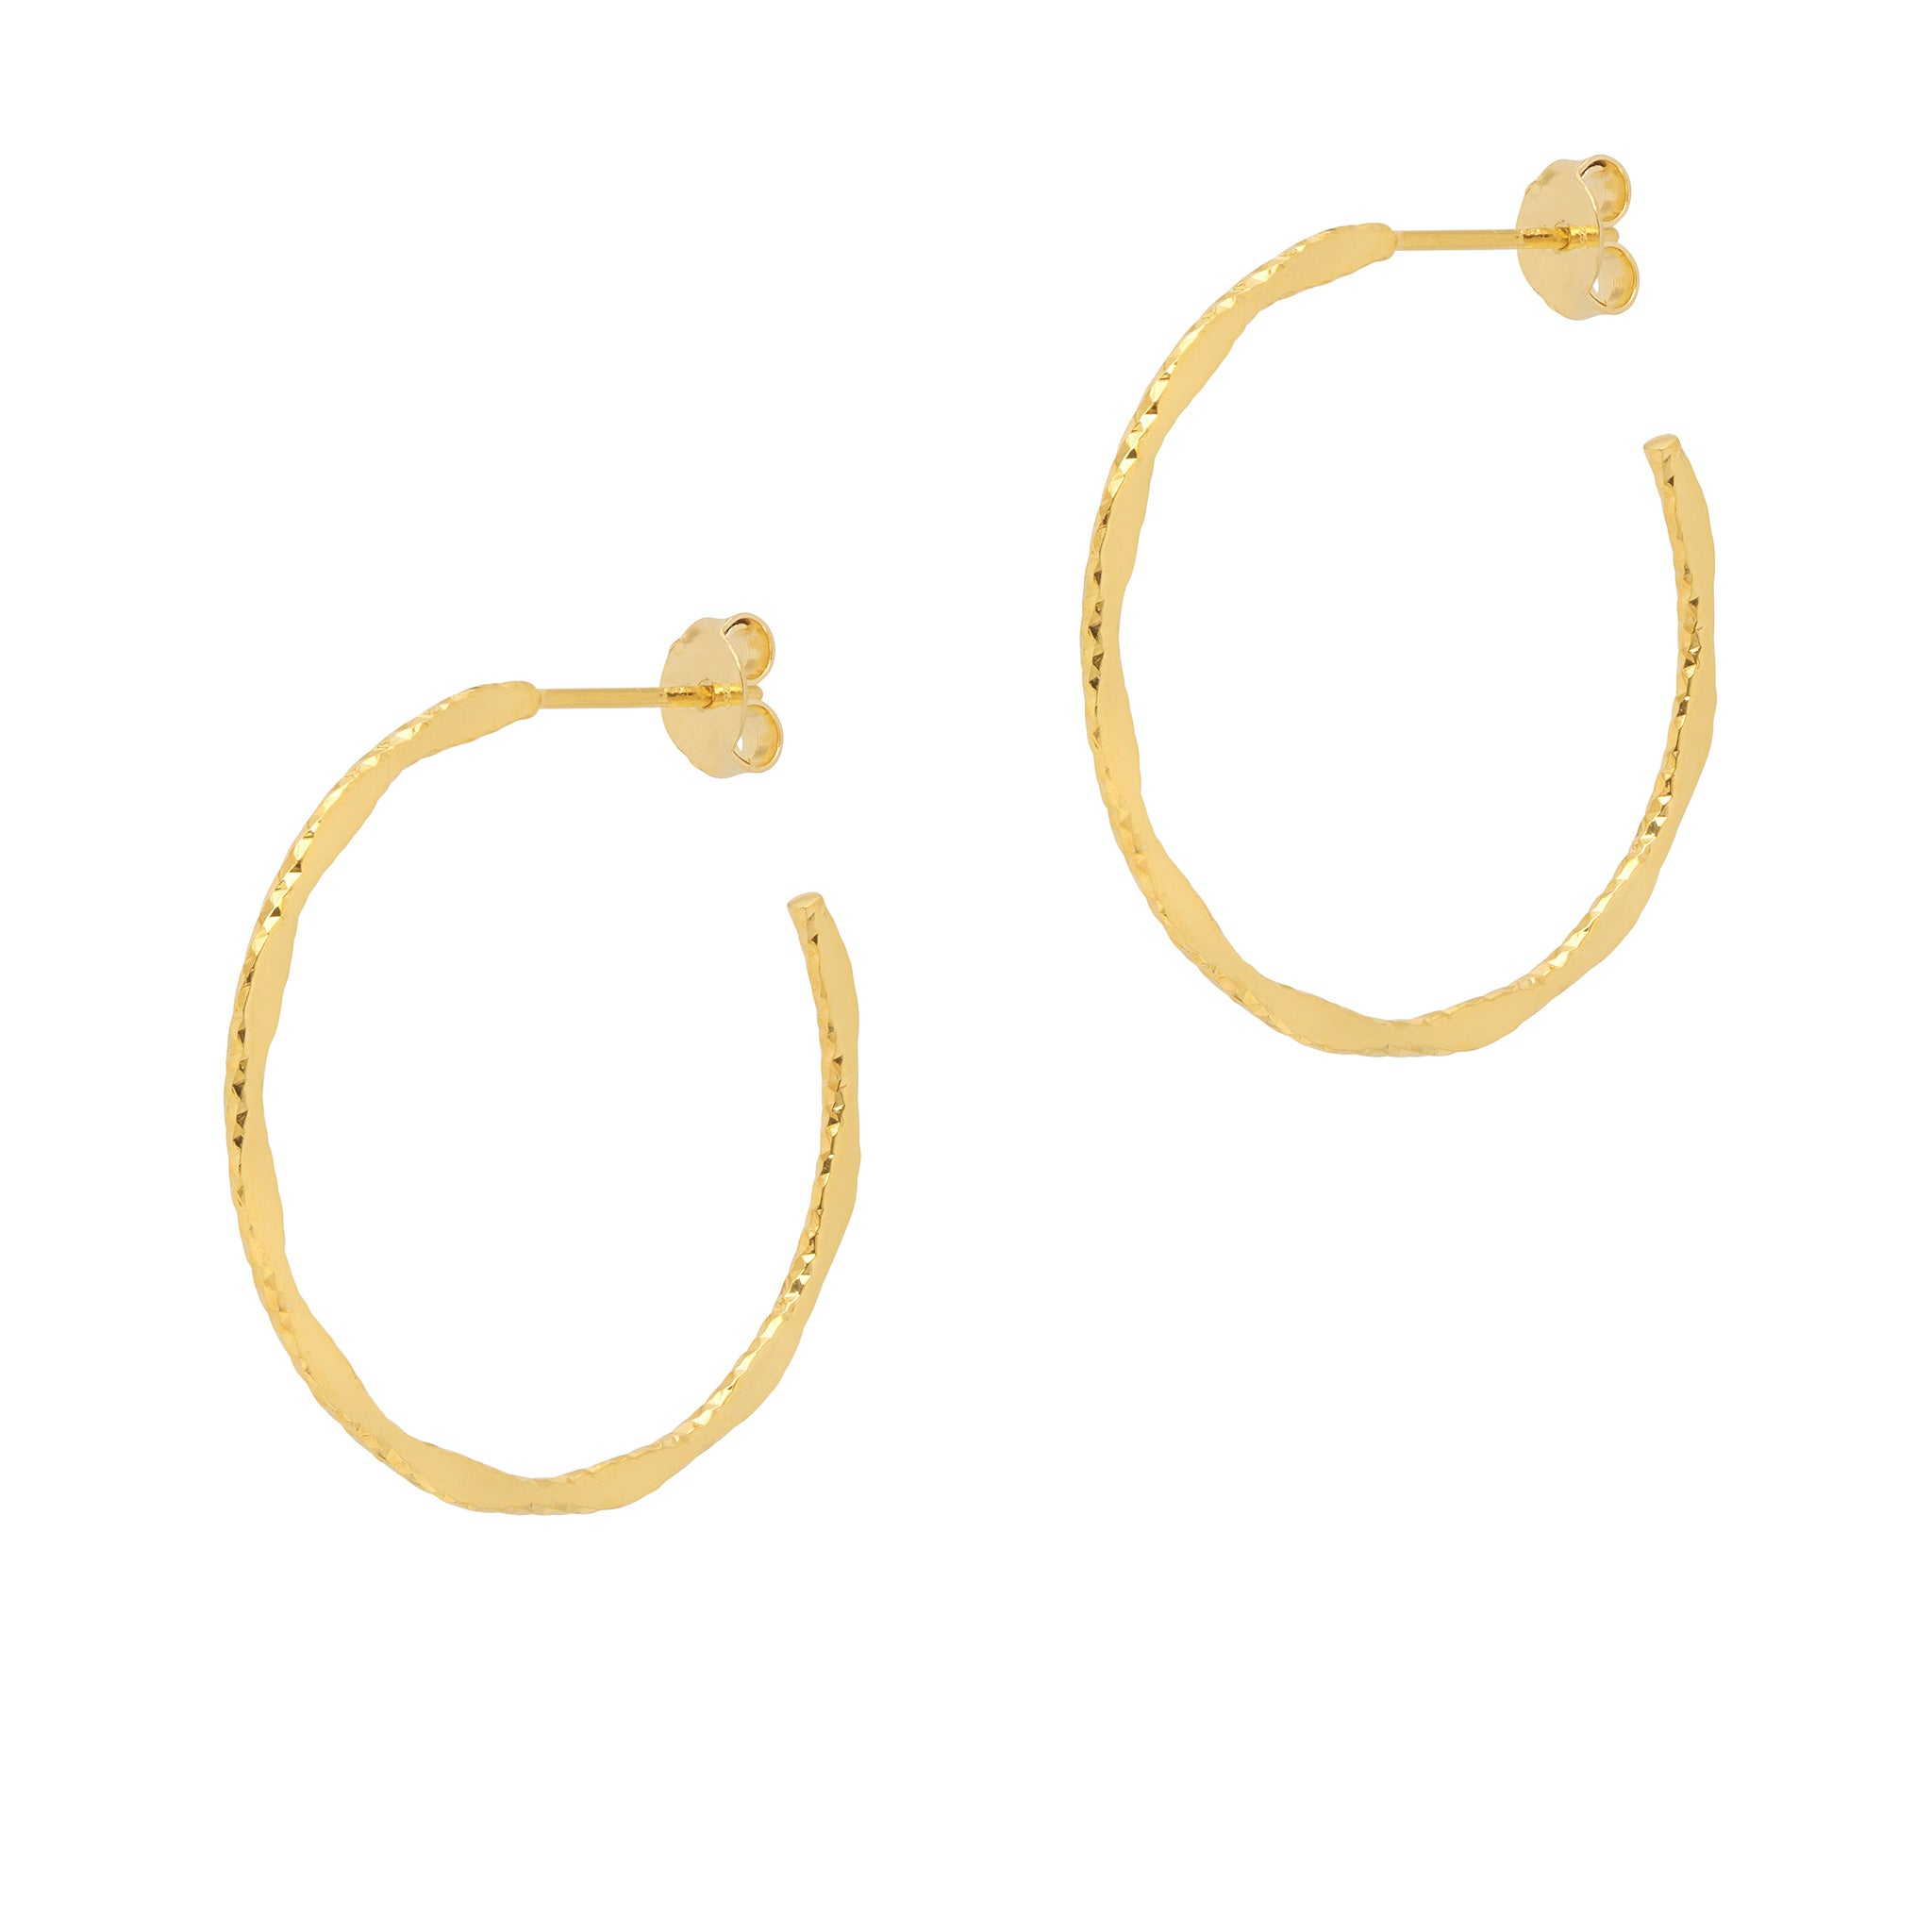 La MODENA Gold - New size - The Hoop Station 925 Sterling Silver Hoop Earrings Gold Huggies